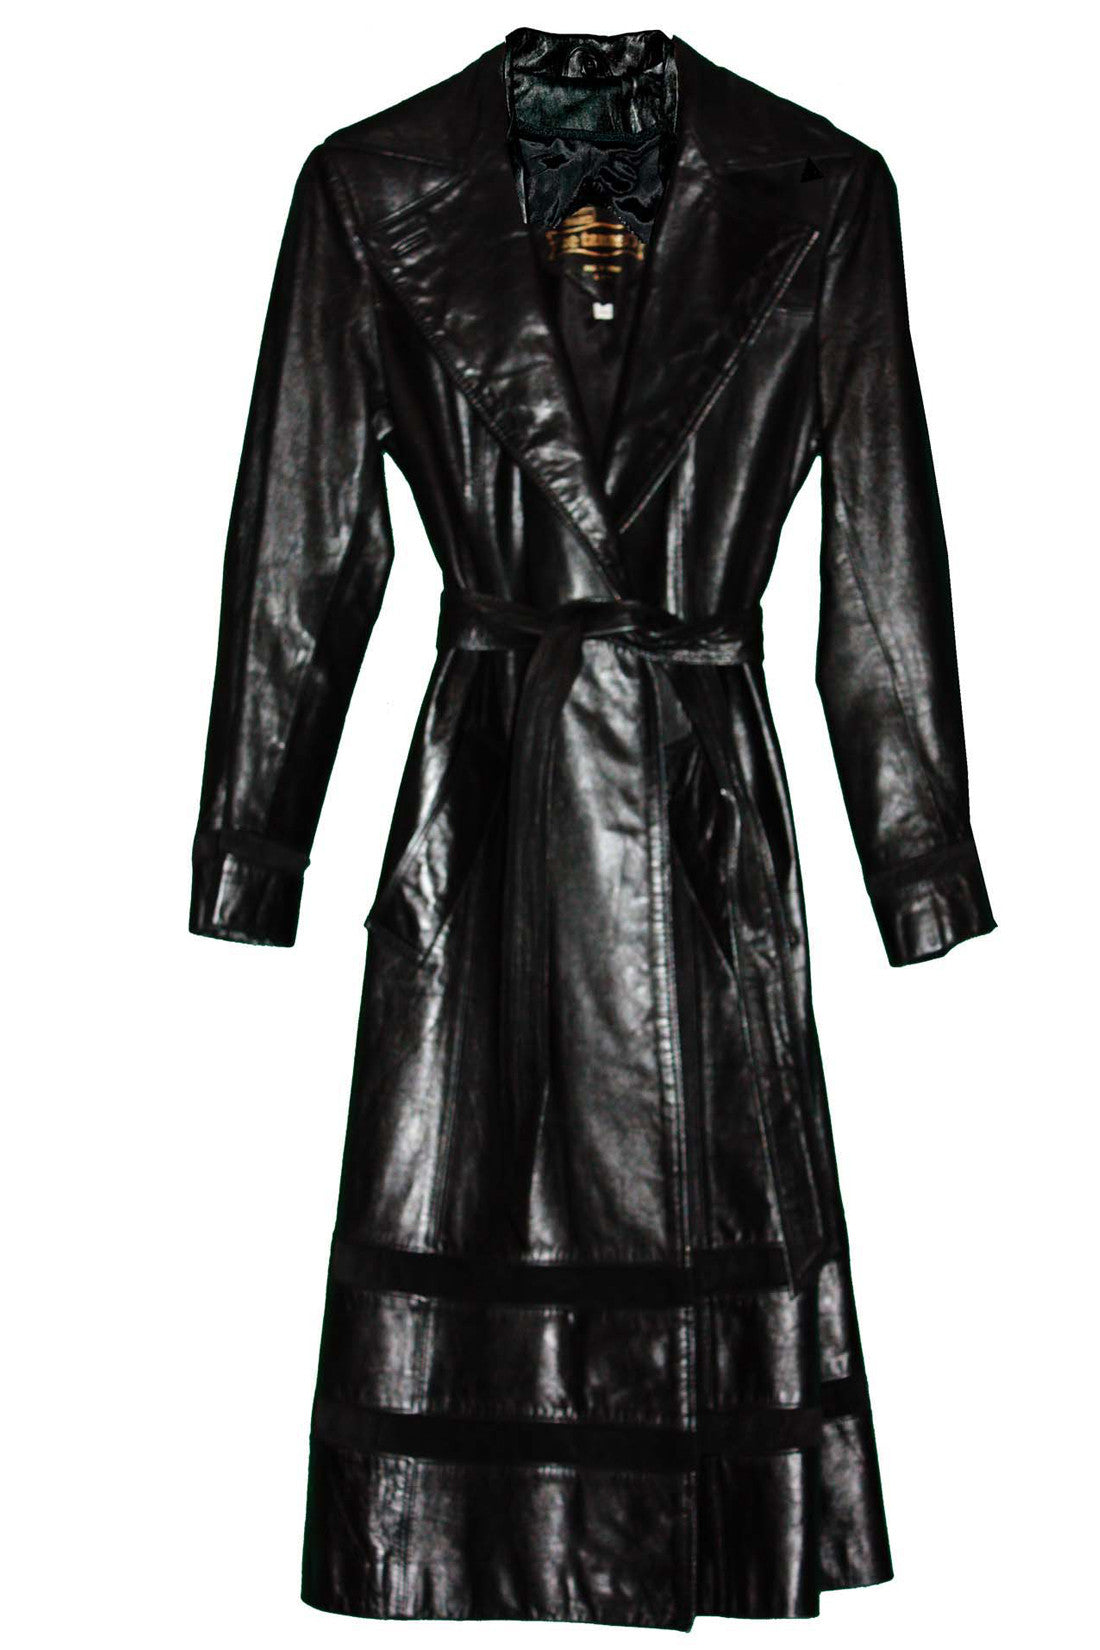 Vintage leather coat - Shop from SoLovesVintage